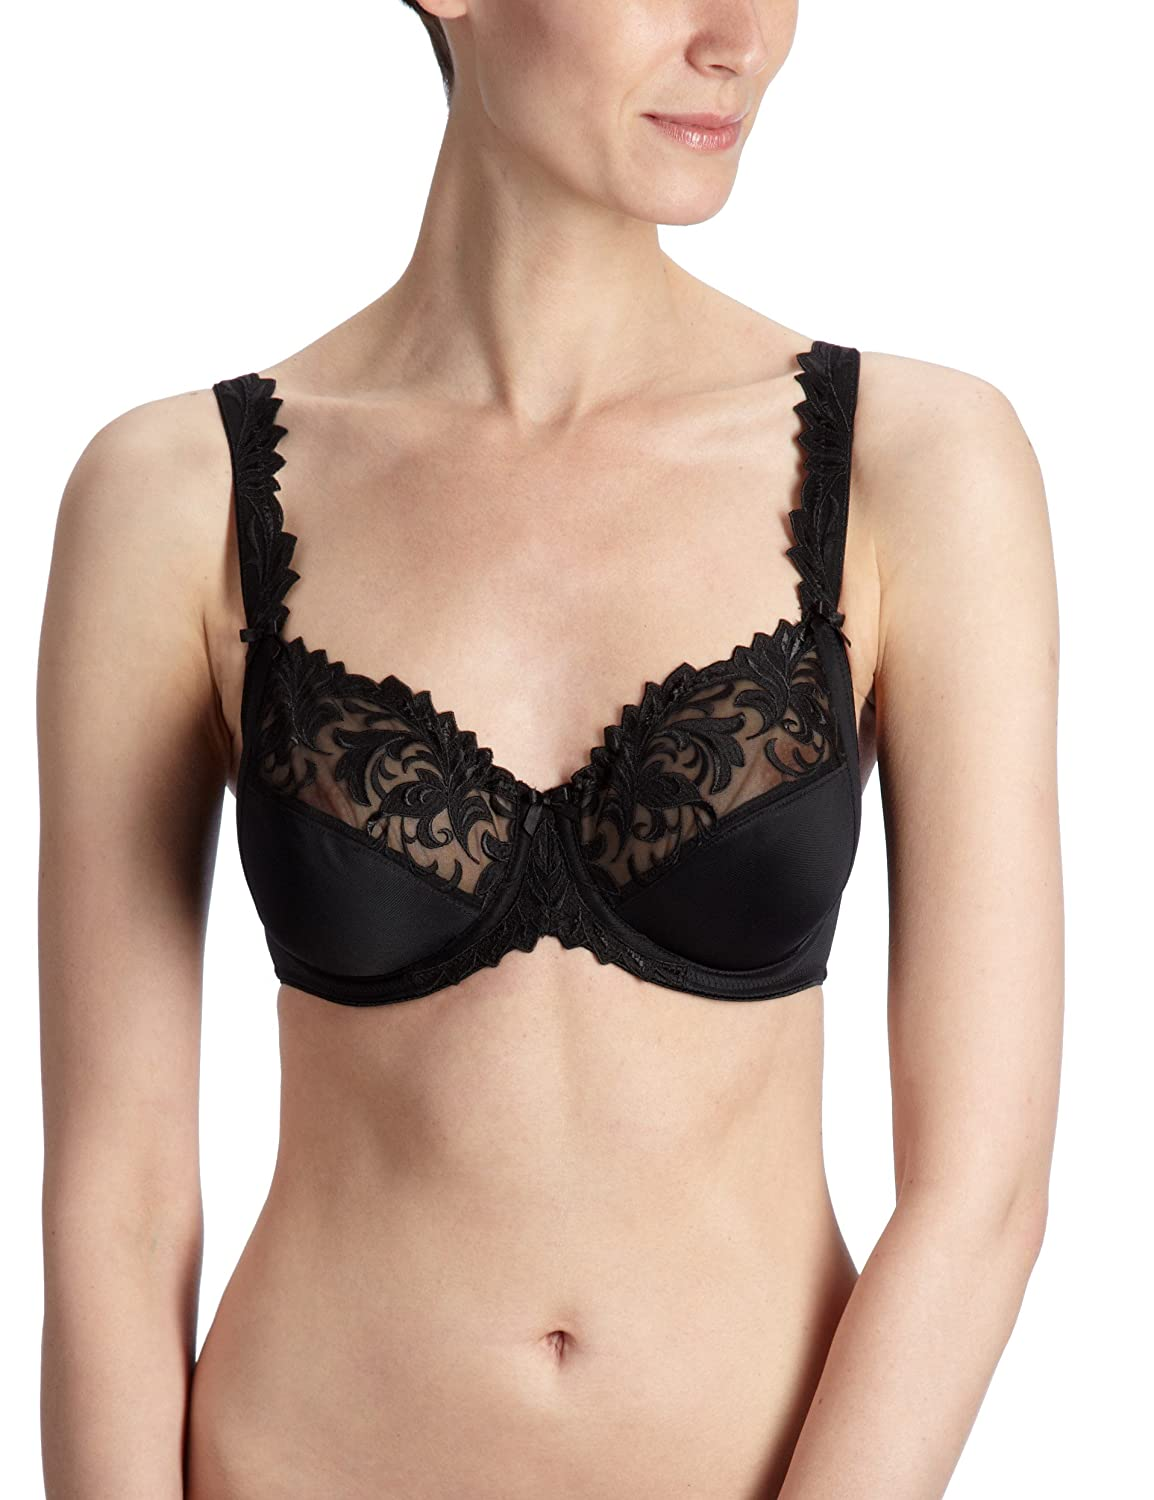 Felina 518-4 Womens Passion Black Embroidery Underwired Support Coverage Full Cup Bra: Amazon.es: Ropa y accesorios